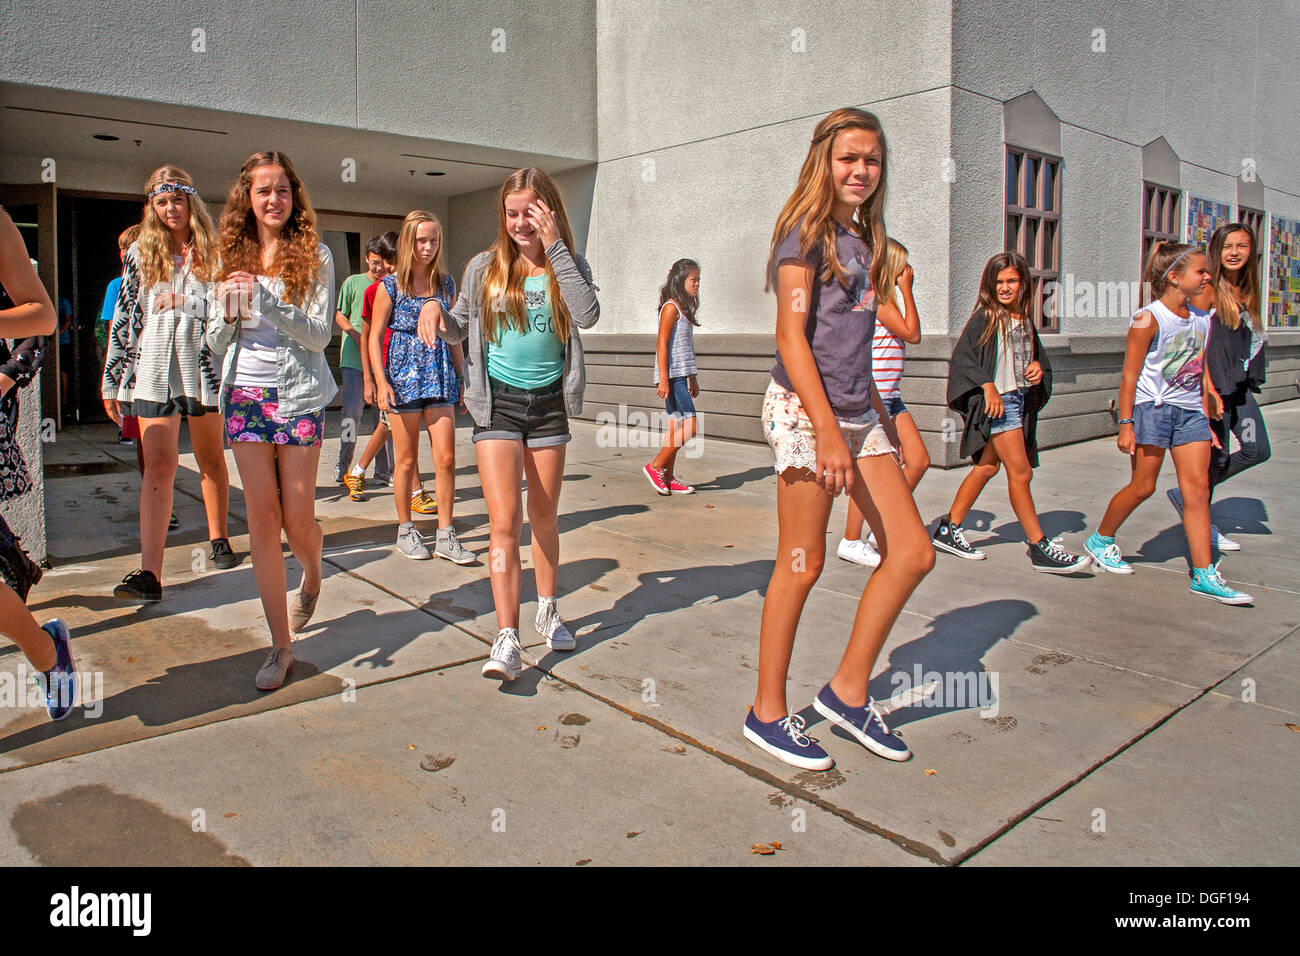 Mission Viejo Ca Middle School Teen Girl Students Walk Out Of The School Building